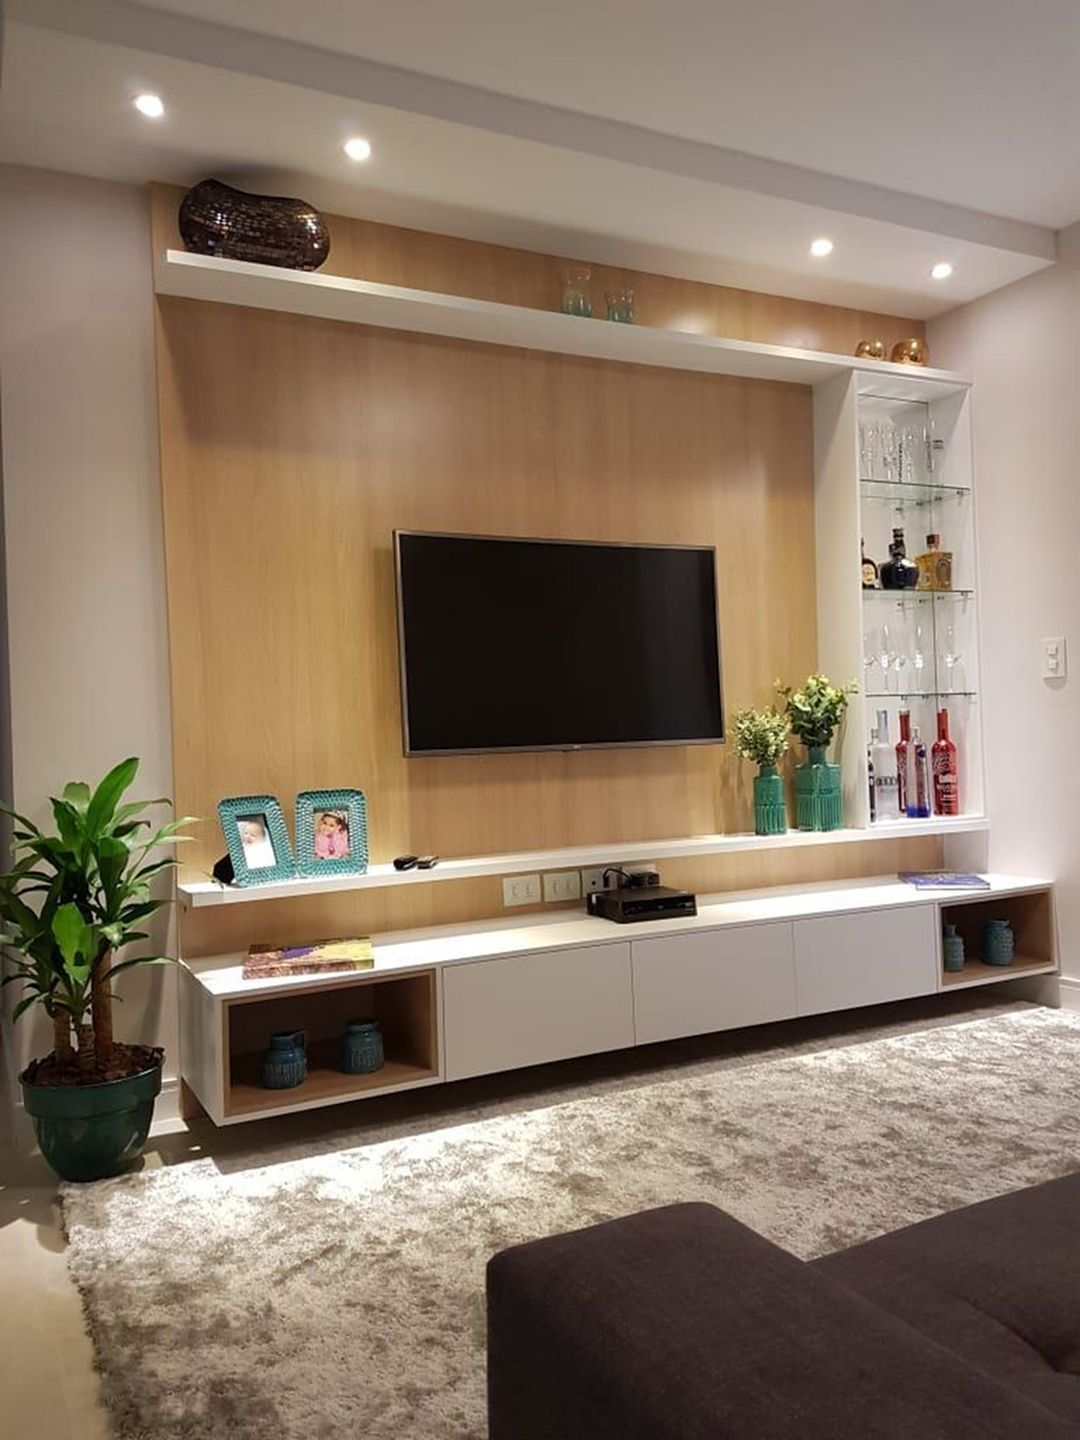 46 Best Ways To Decorate Around The Tv On Your Living Room Par